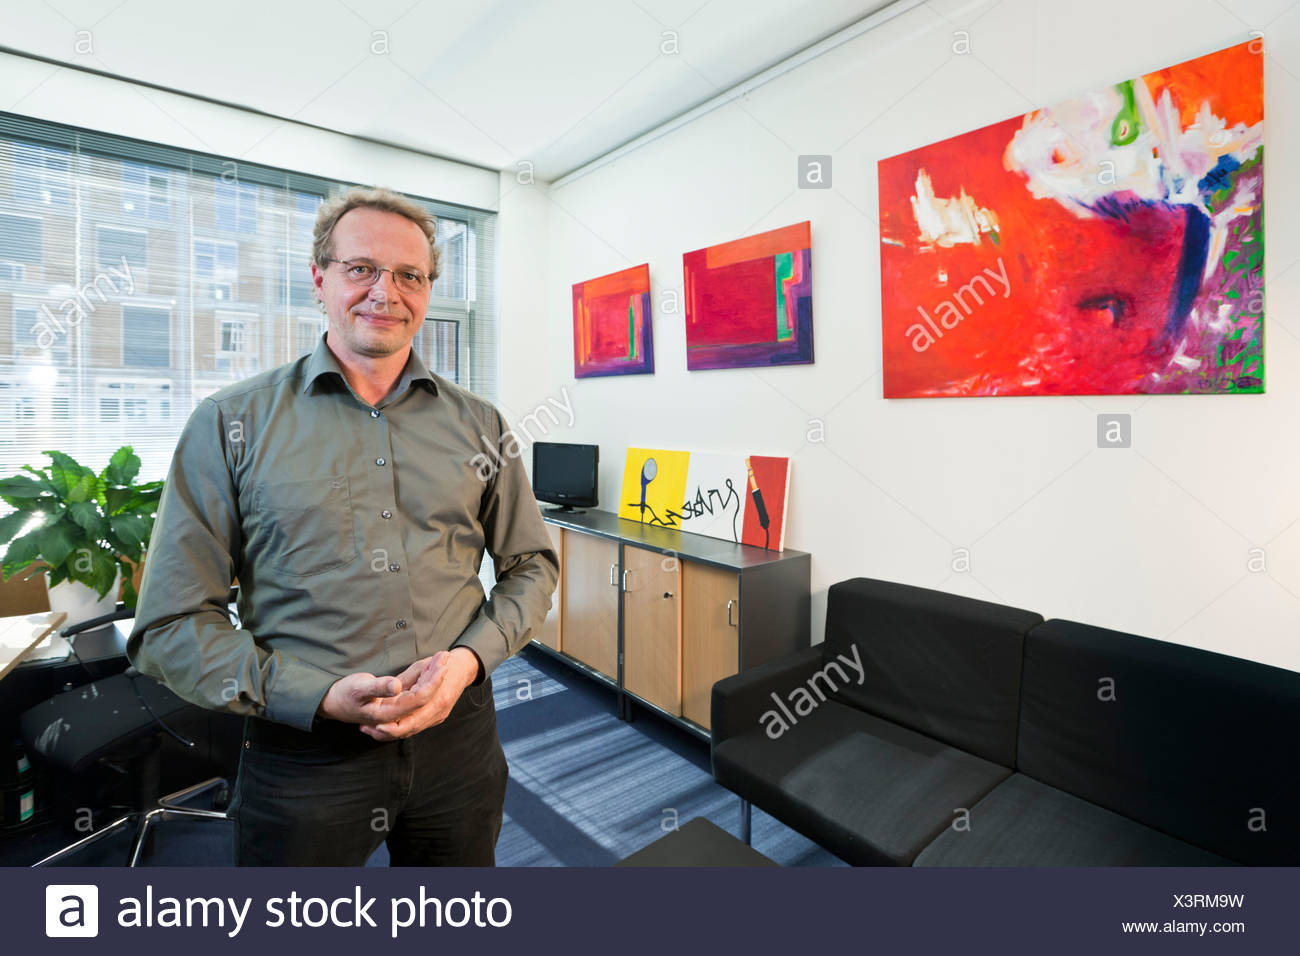 Hermann Ott, porte-parole de la politique climatique du groupe parlementaire des Verts, dans son bureau du Parlement à Berlin, Germany, Europe Photo Stock